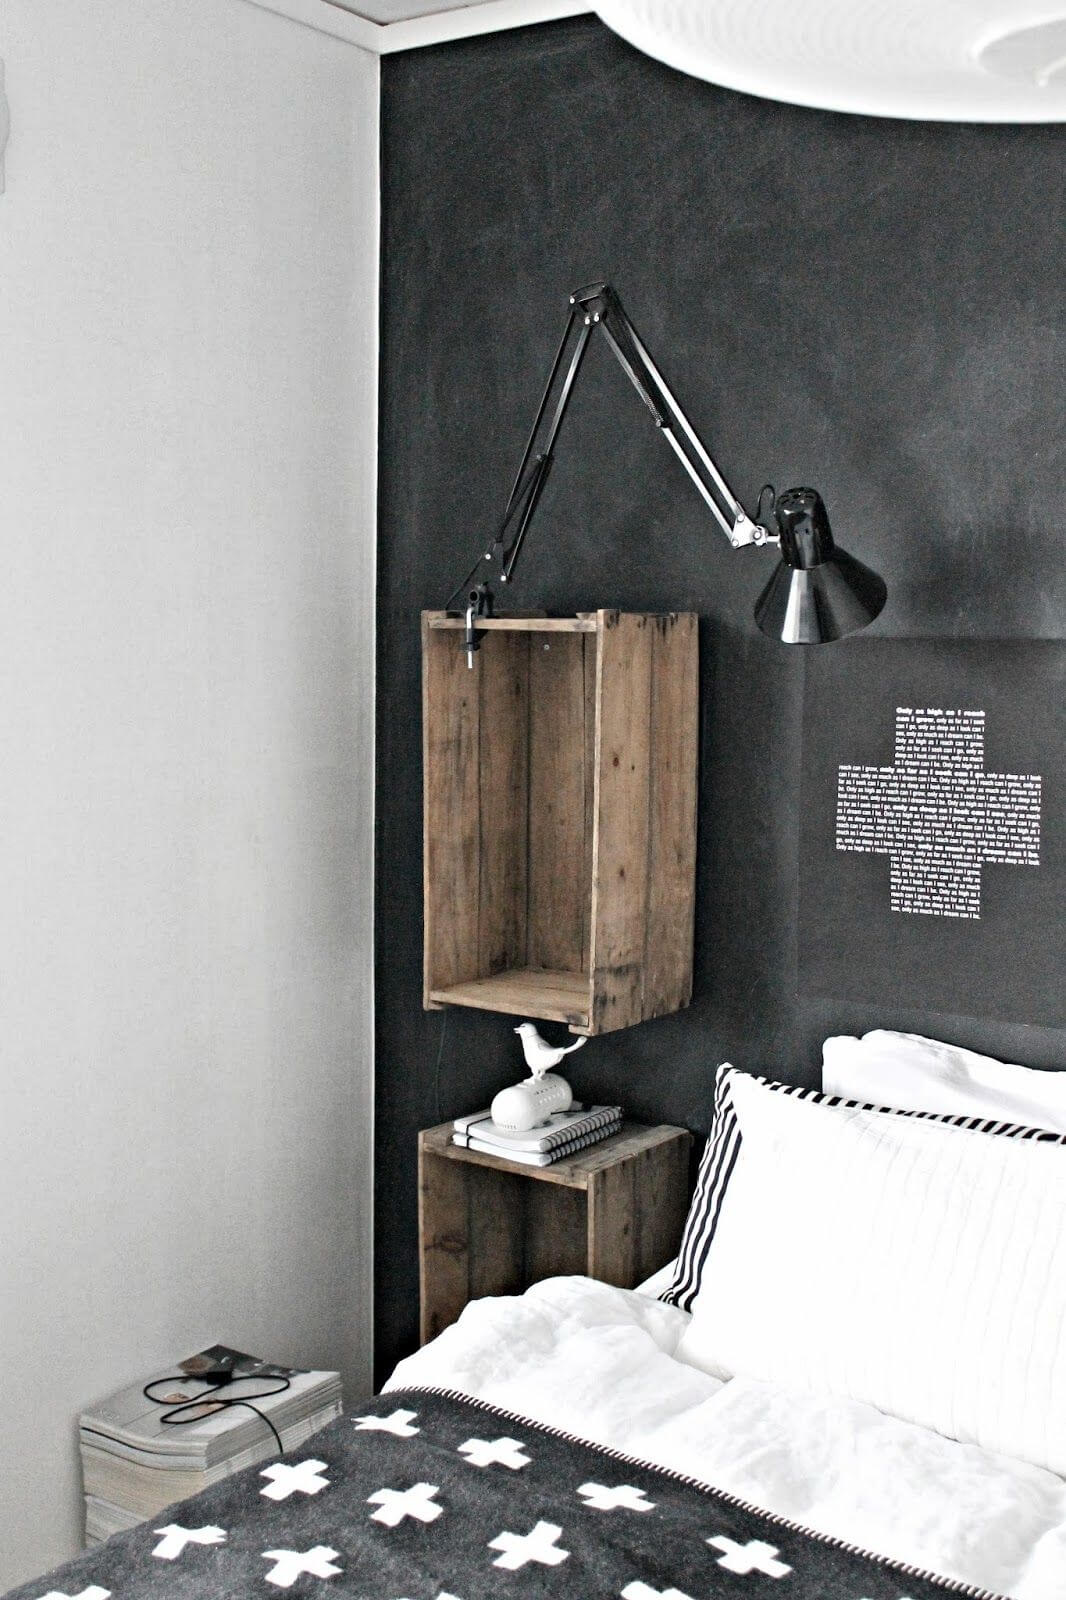 Black Wall with Hanging Crates